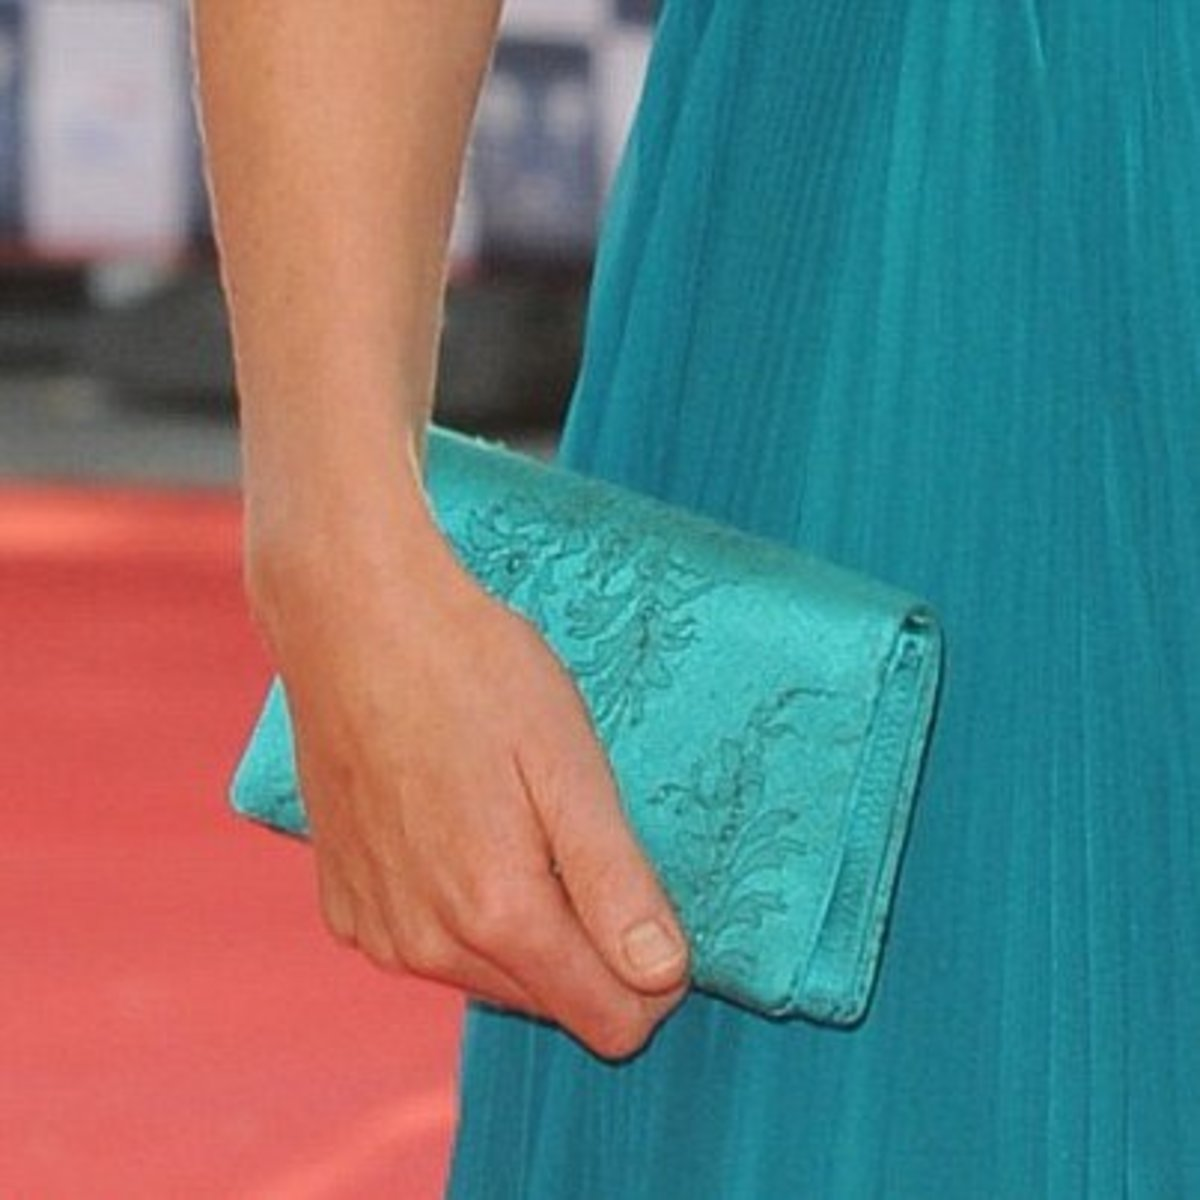 The clutch subtly blends in with Kate's dress.